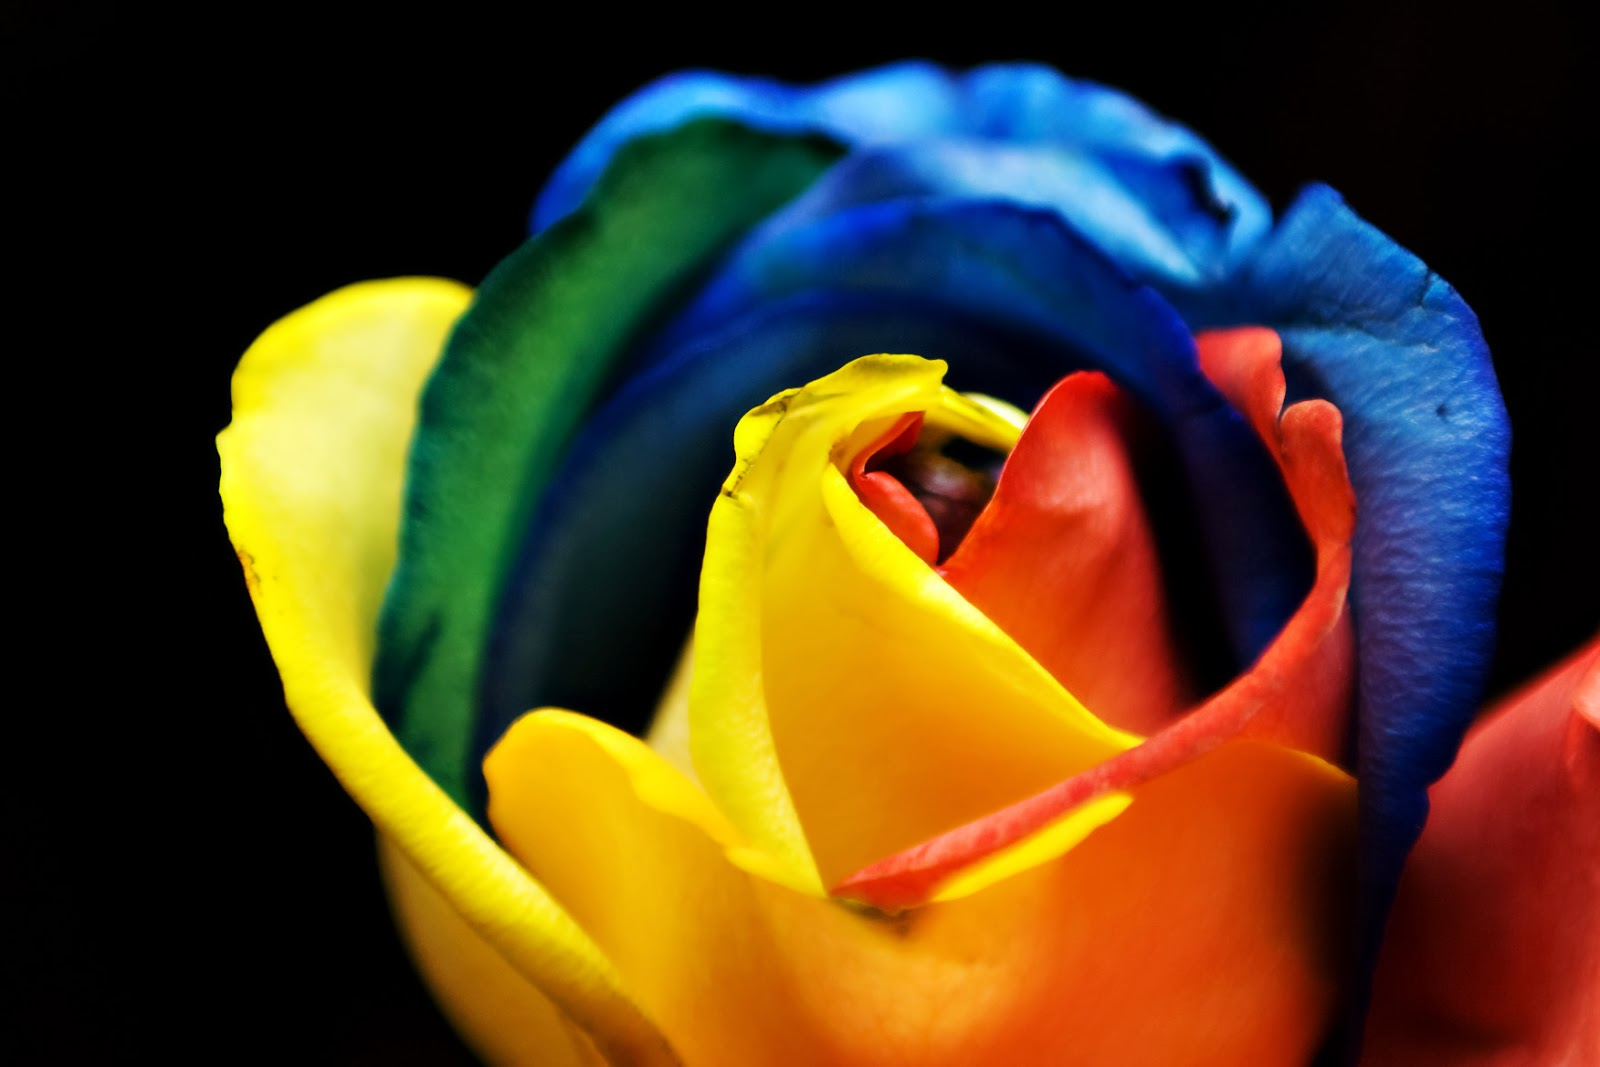 Life enhancing vanilla essence ing for How much are rainbow roses